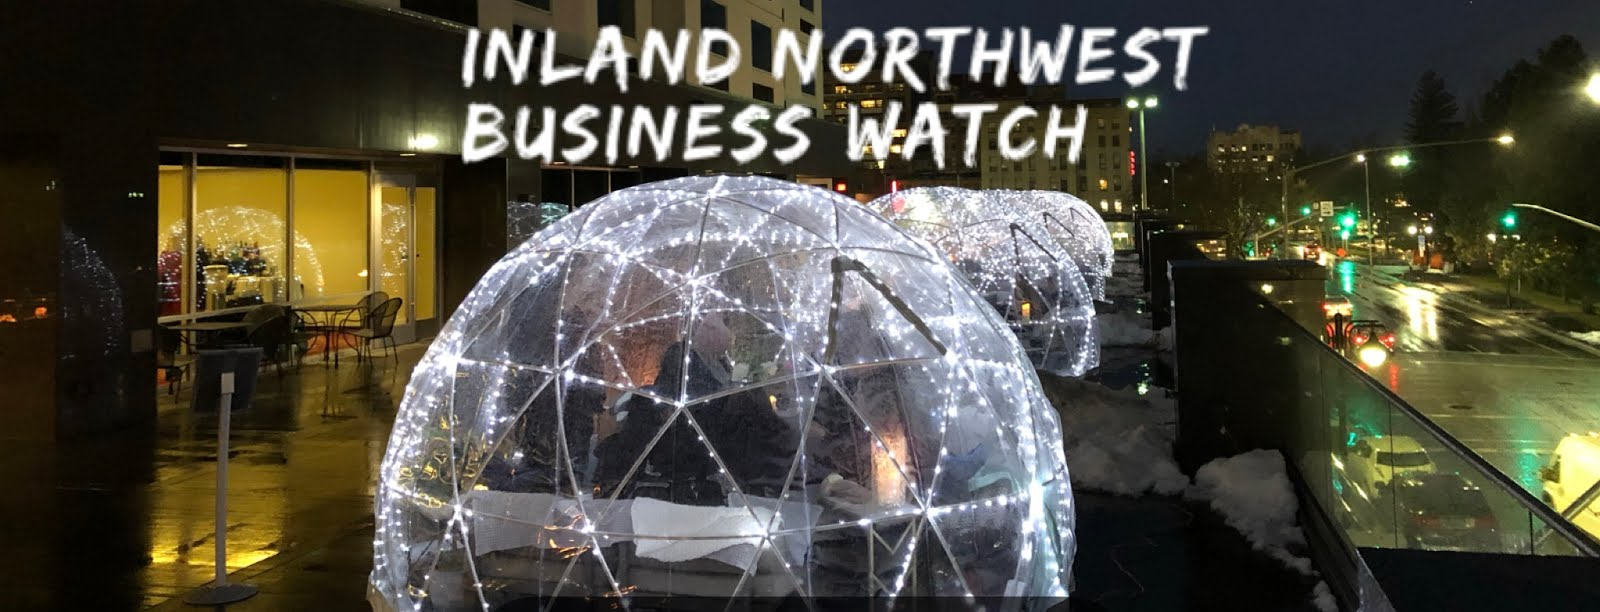 Inland Northwest Business Watch: May 2015